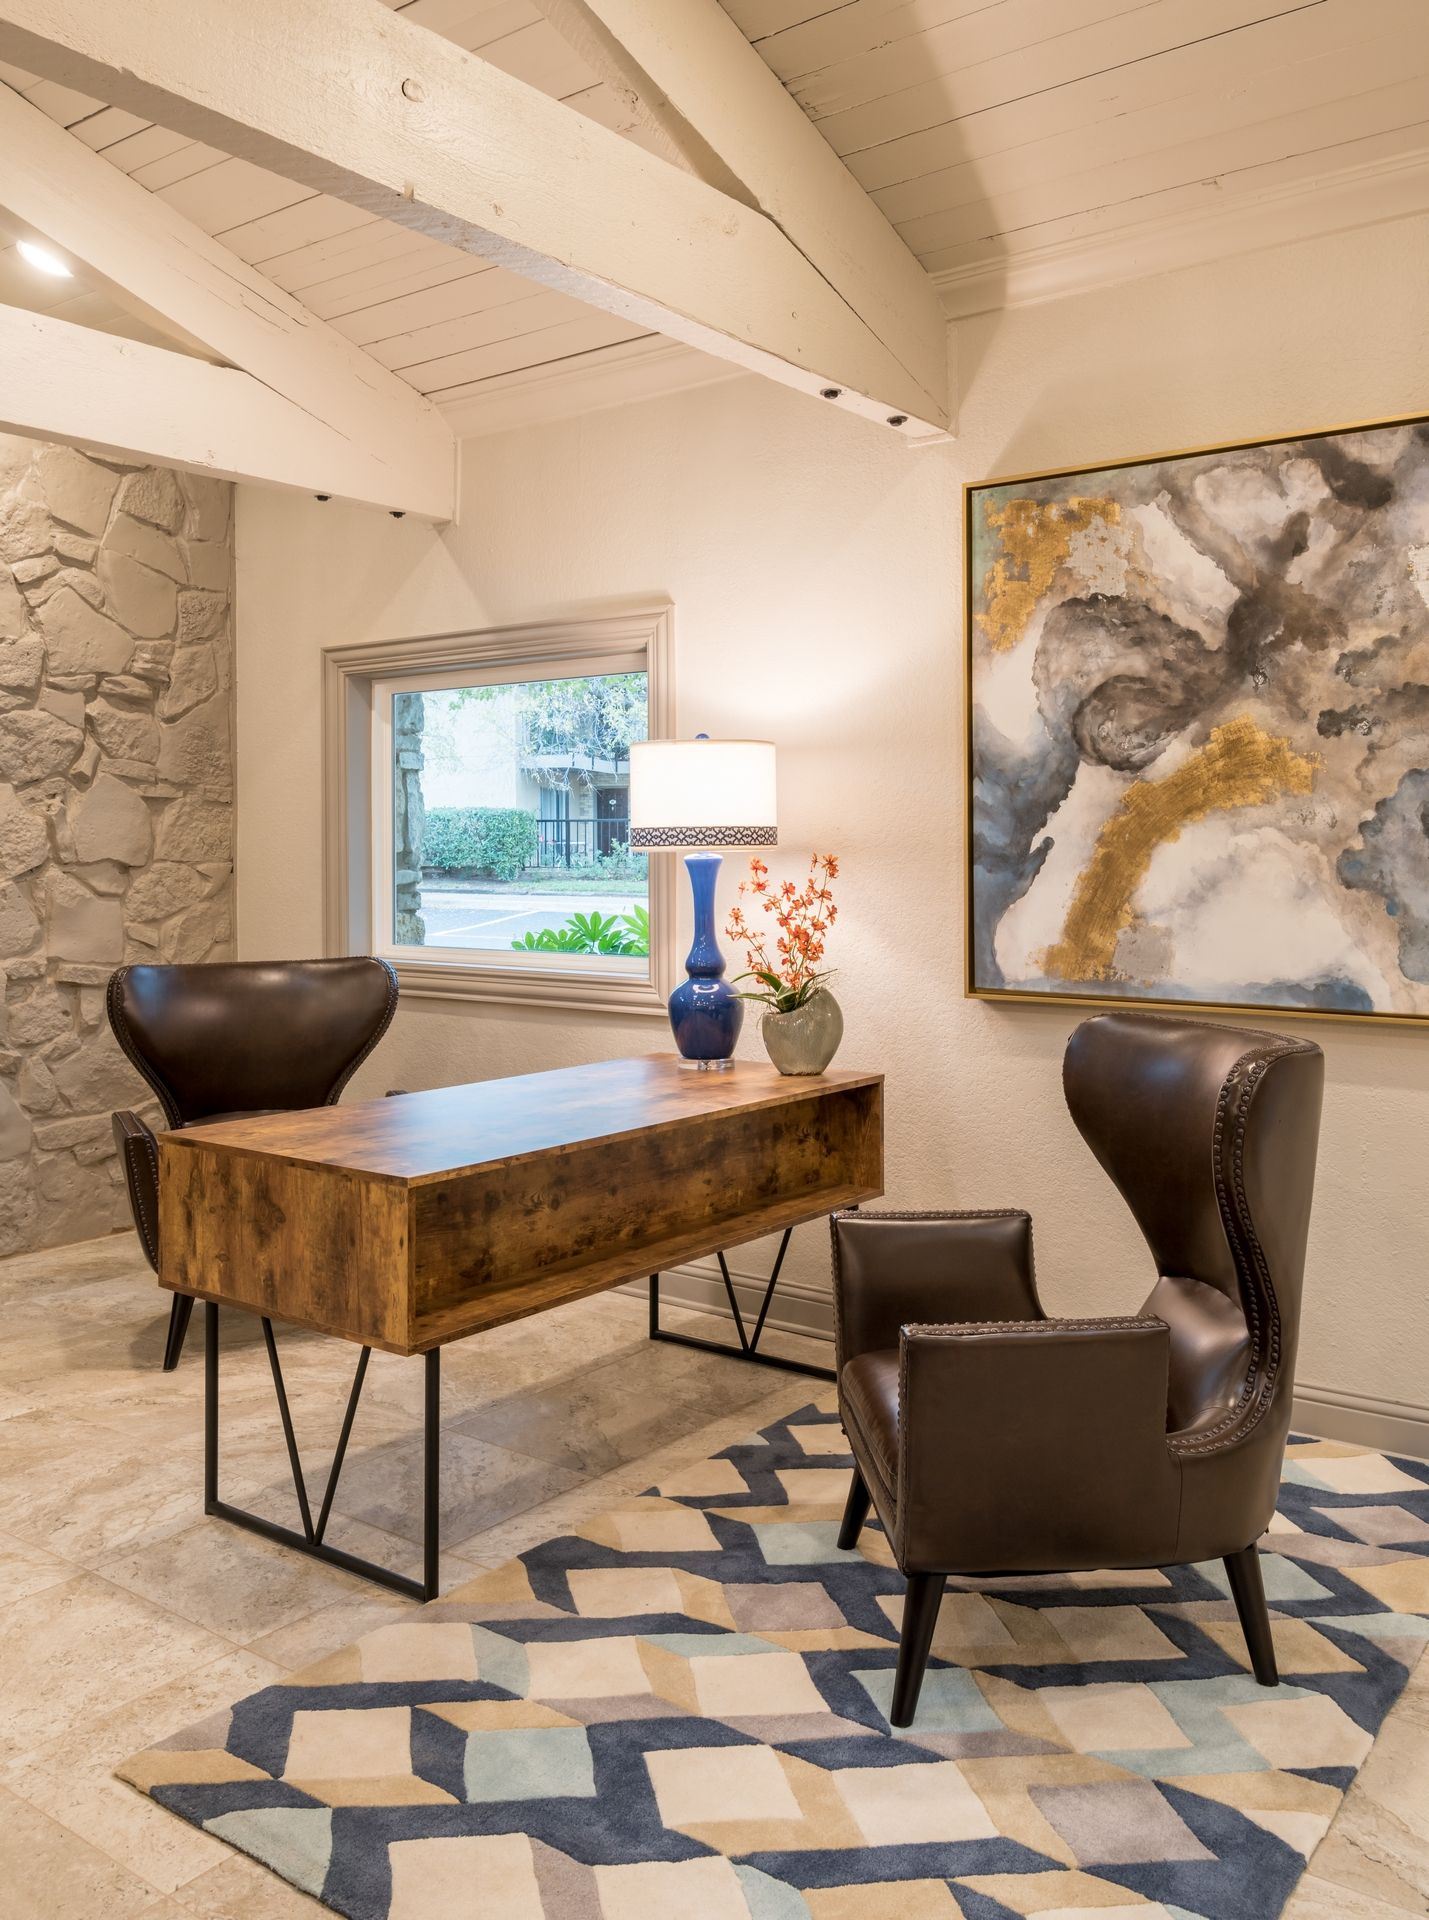 Decorating Den Interiors - The Landry Team | Commercial Spaces ...